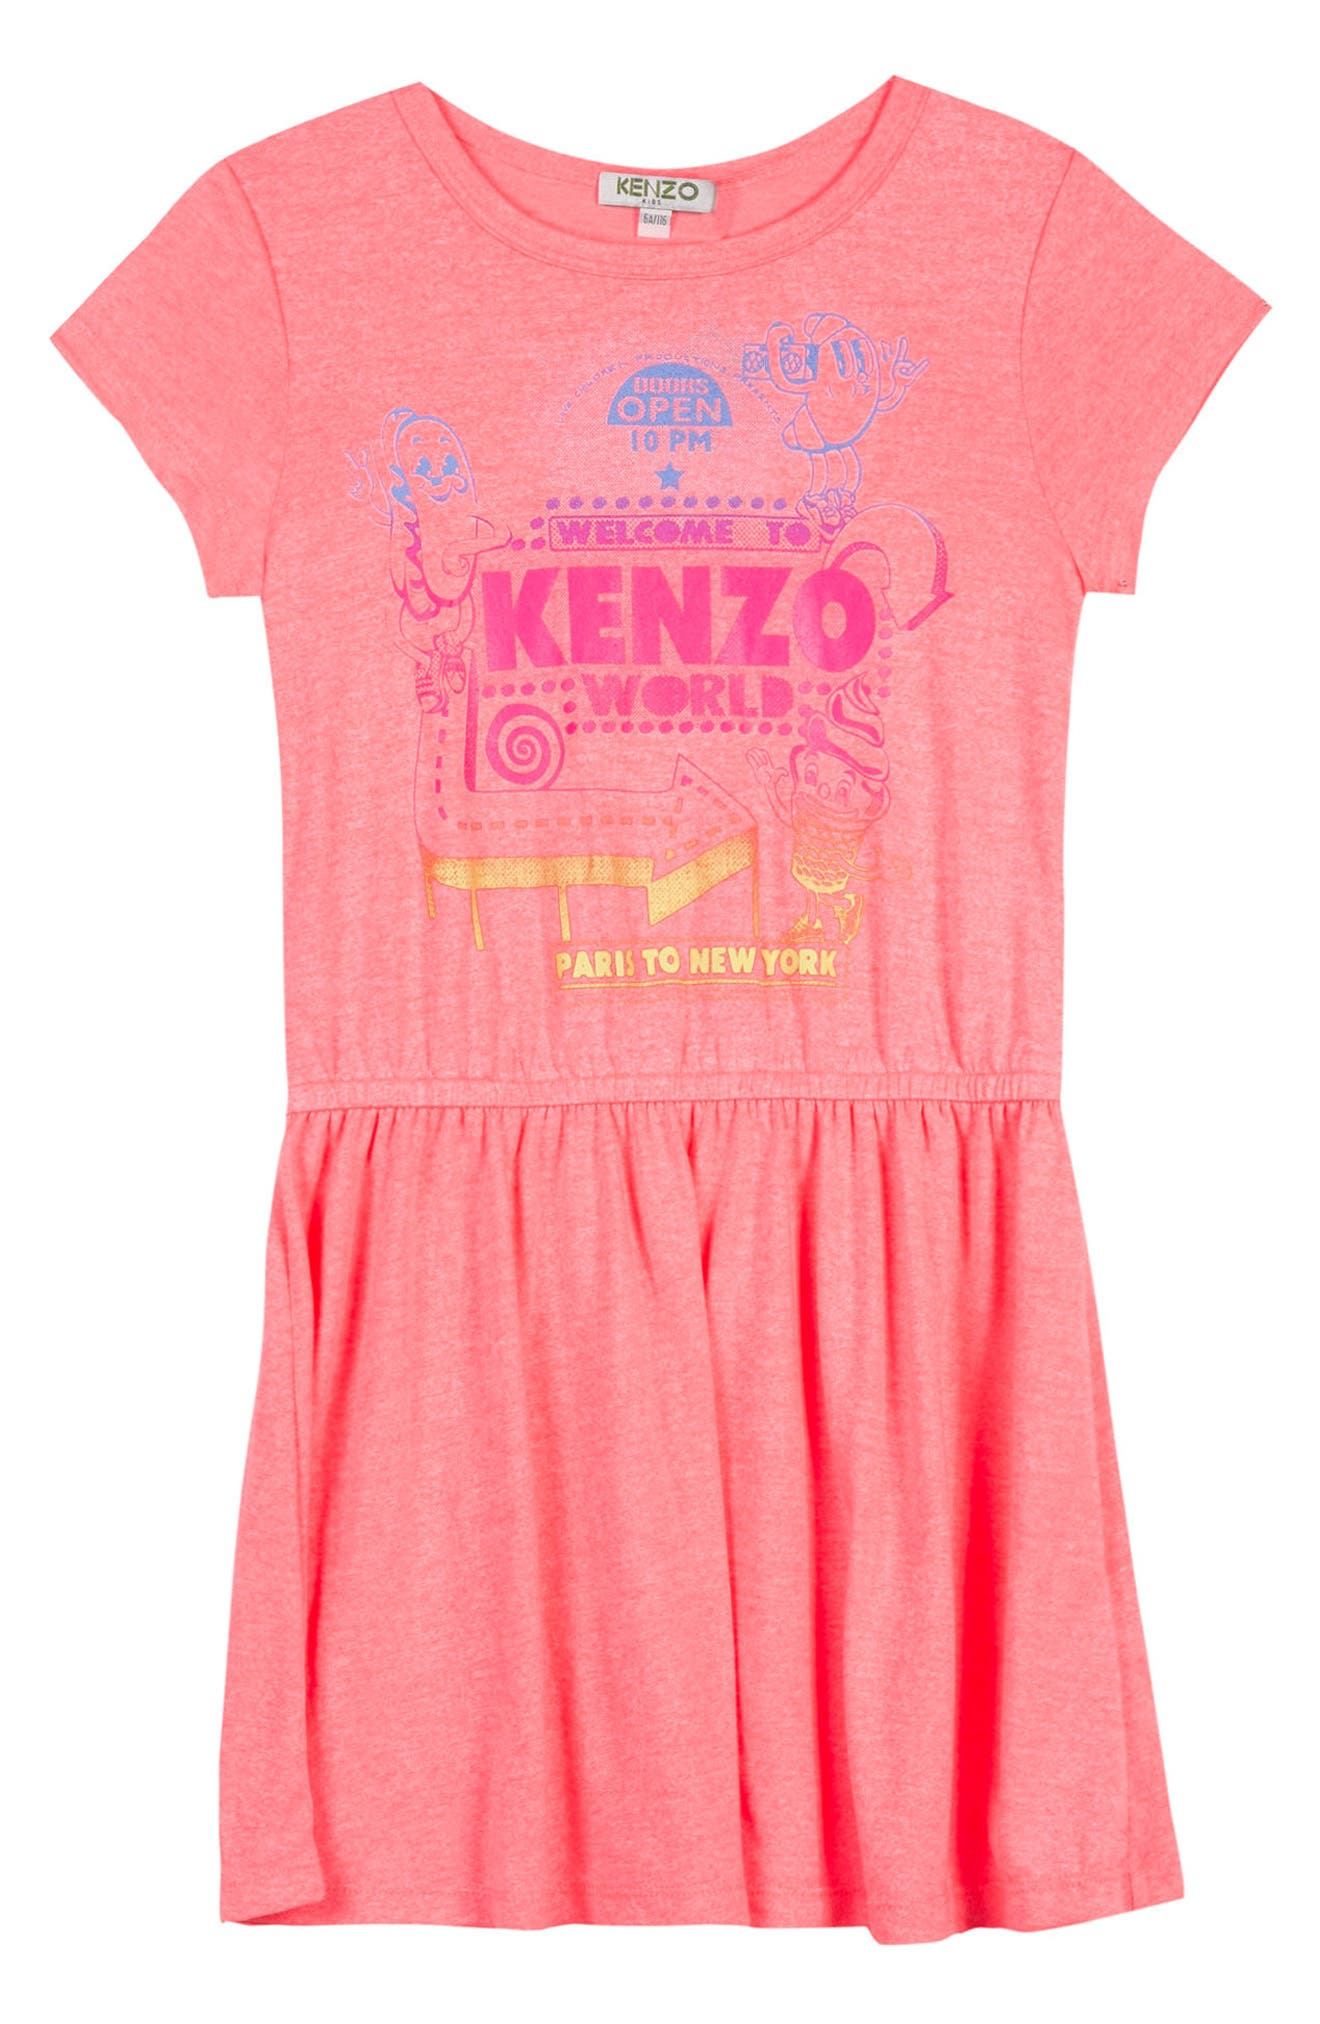 KENZO Logo Skater Dress (Toddler Girls, Little Girls & Big Girls)